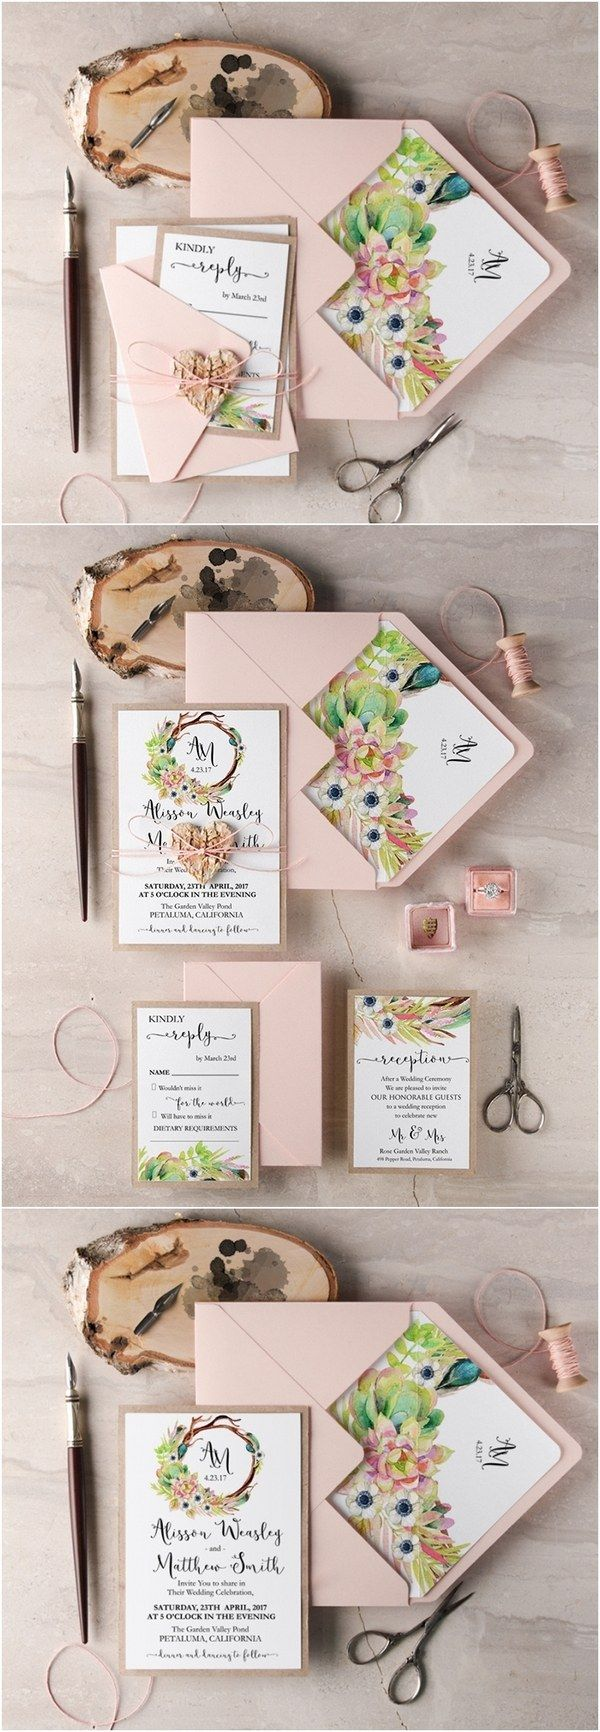 Rustic blush pink botanical wedding invitations / http://www.deerpearlflowers.com/rustic-wedding-guest-books-botanical-wedding-invitations/